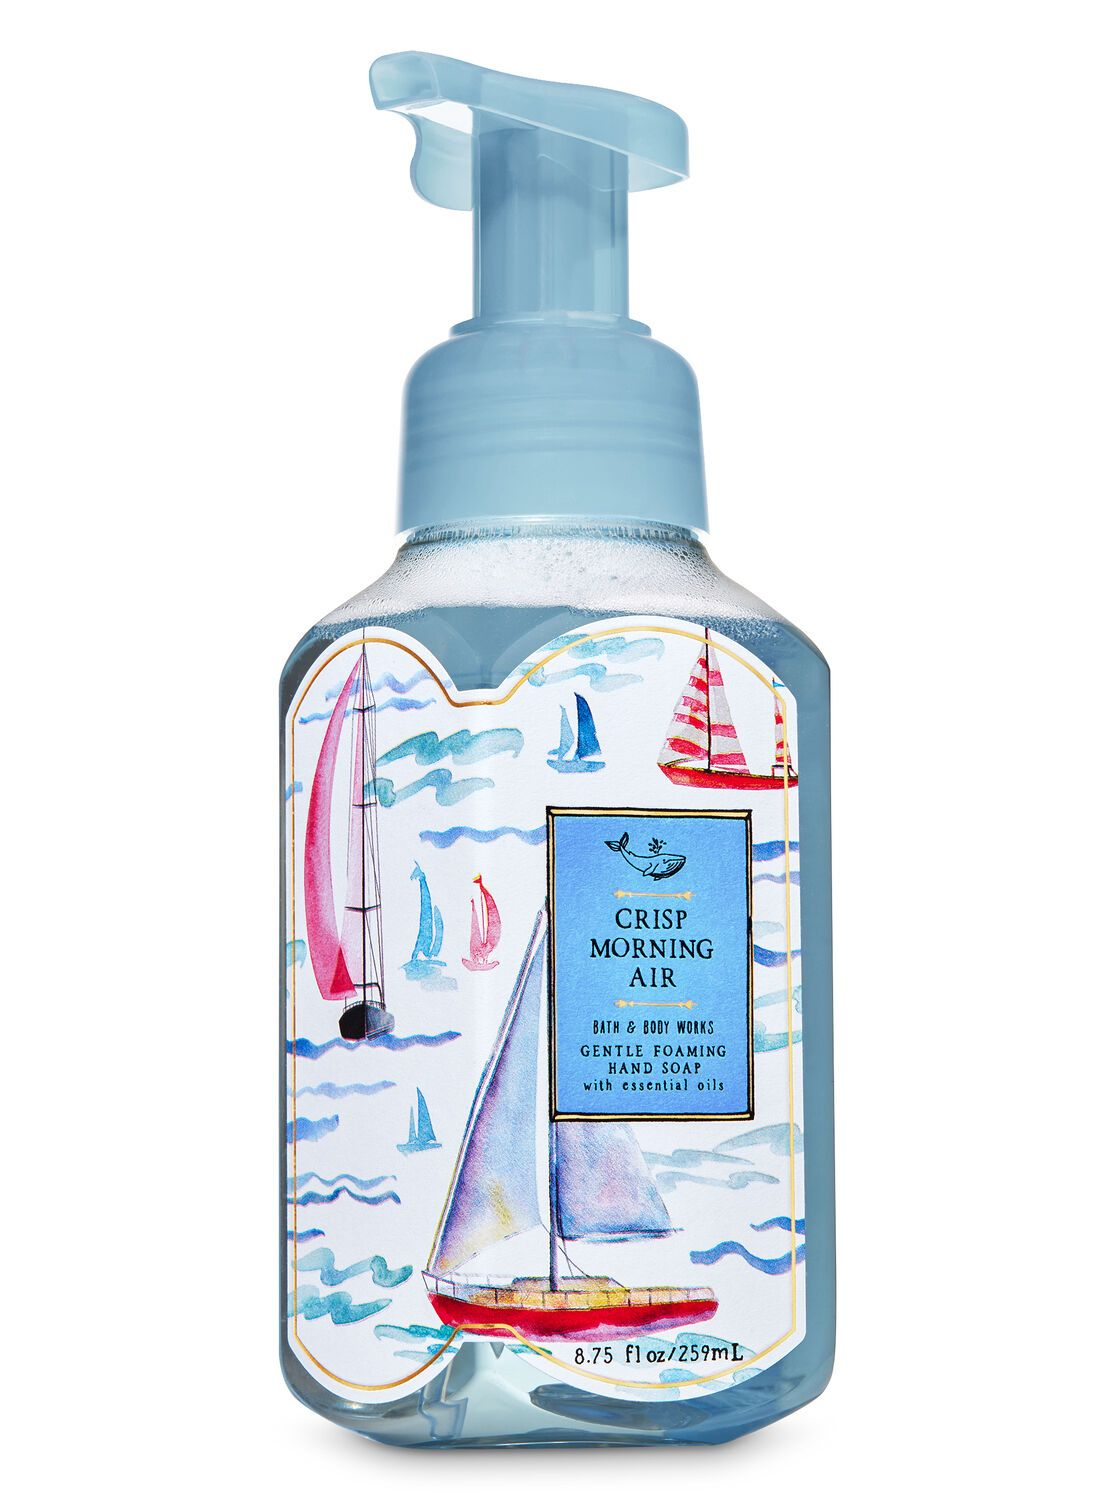 Bath Body Works Crisp Morning Air Gentle Foaming Hand Soap In